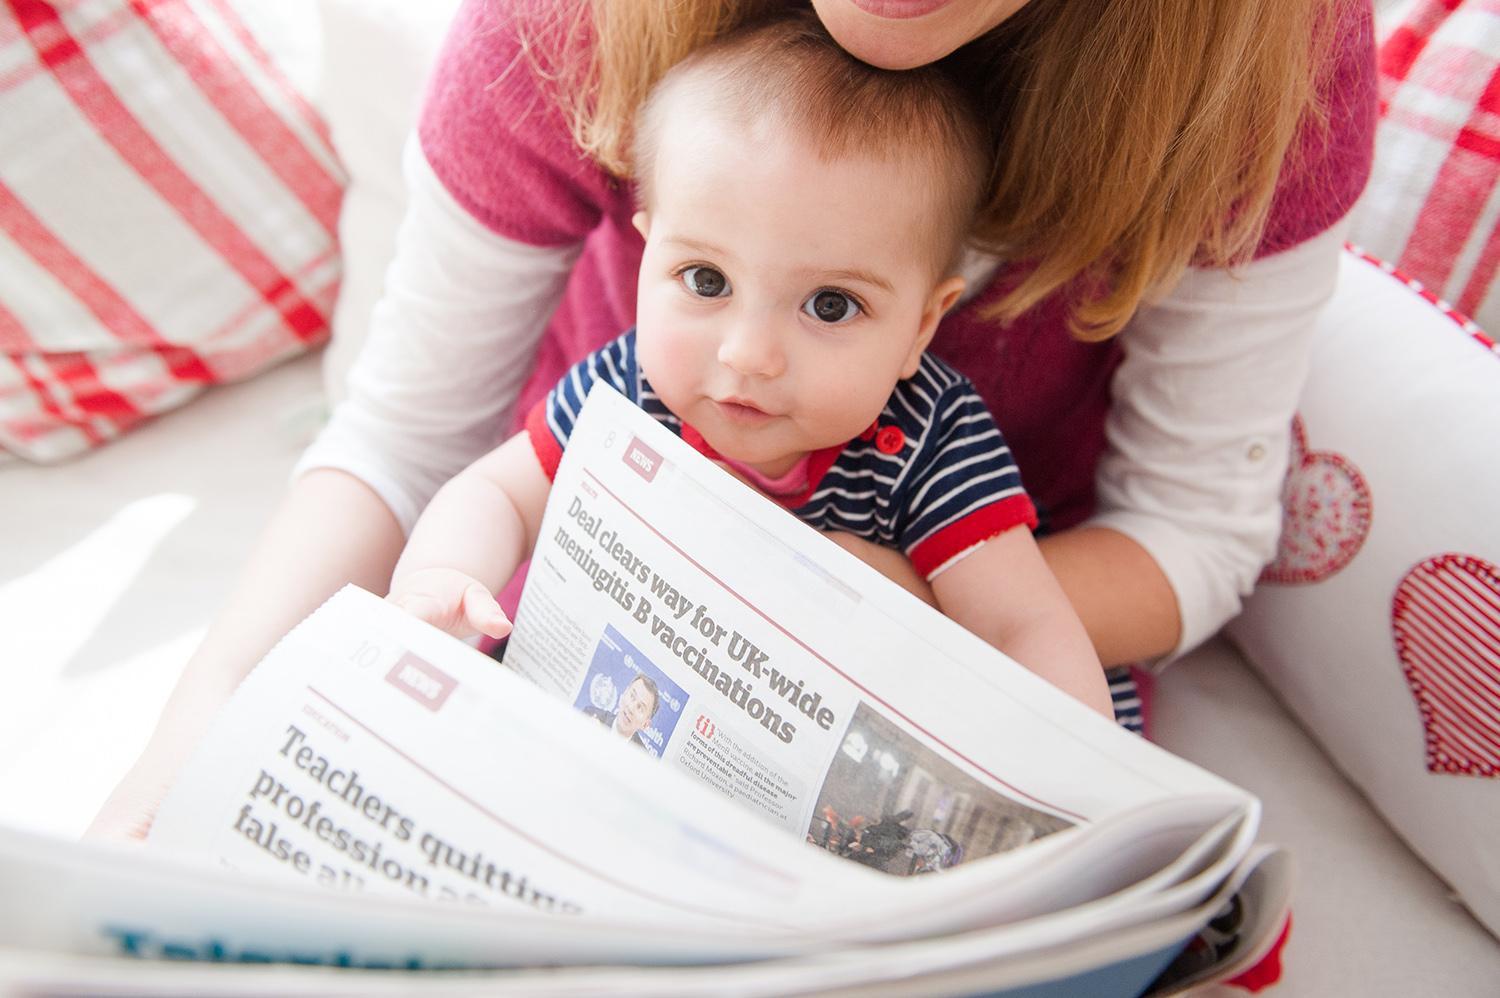 jma-photography-baby-holding-newspaper.jpg